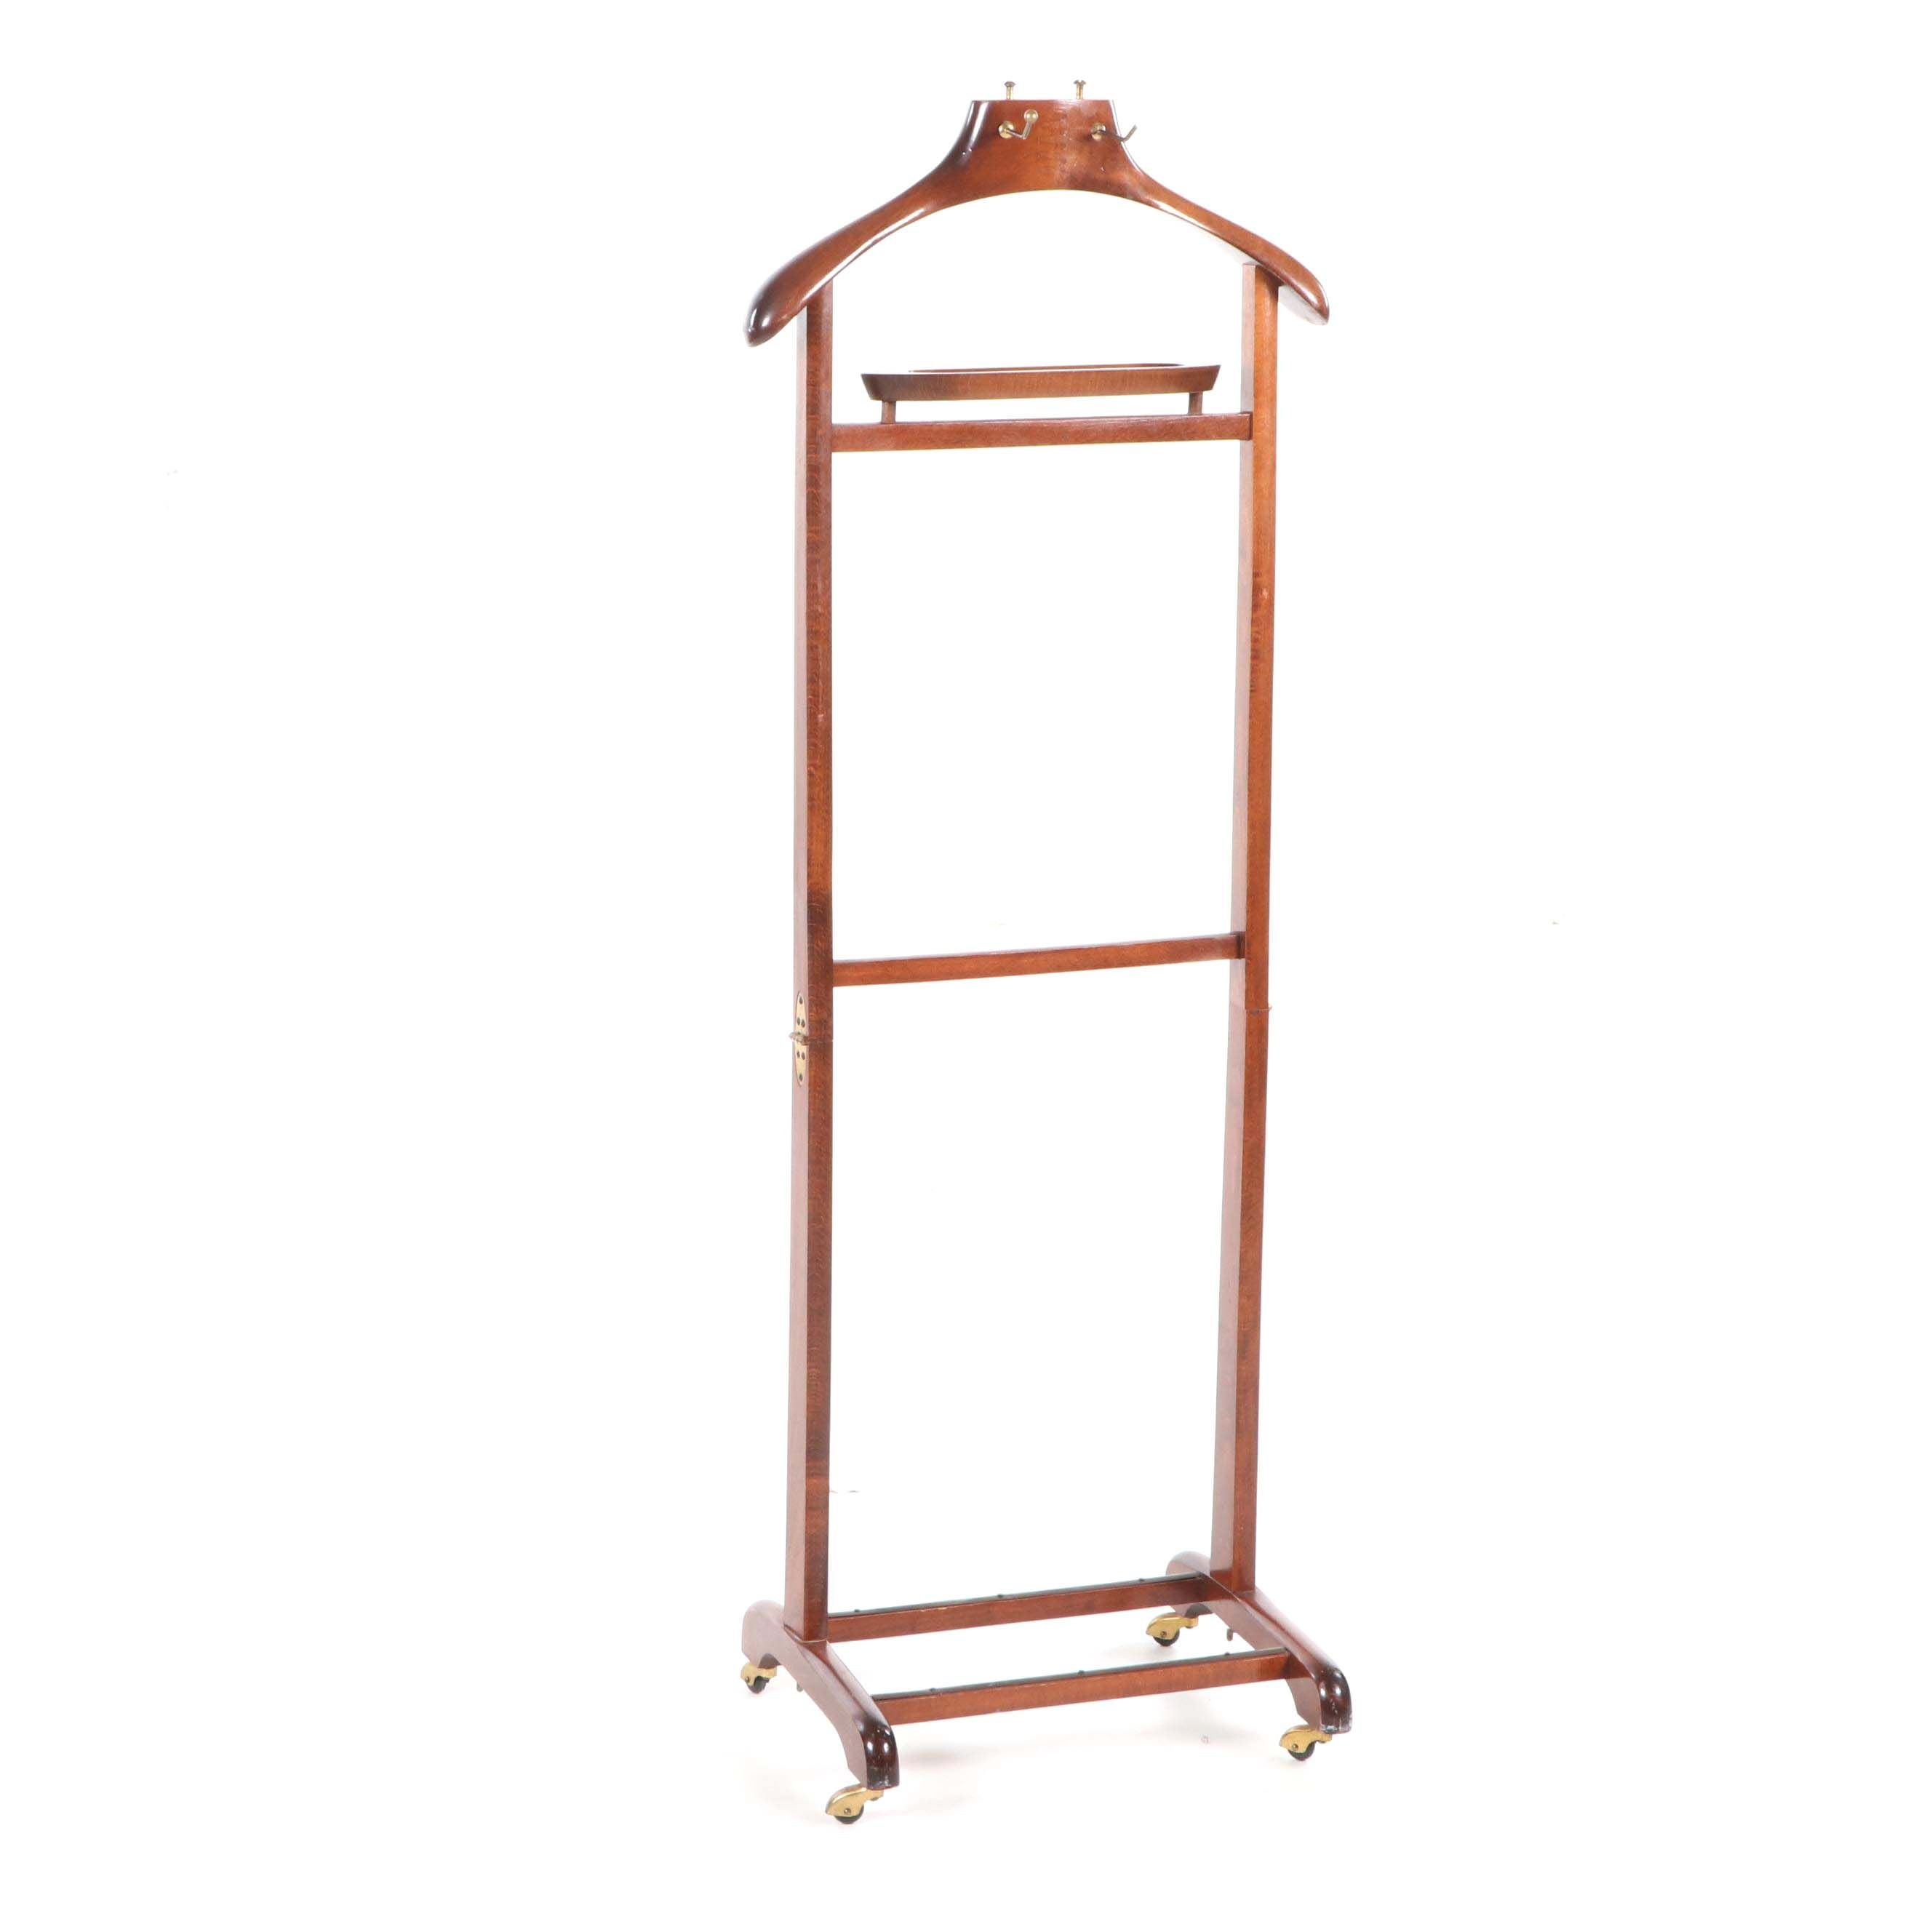 Walnut Valet Stand by SPQR, Late 20th Century